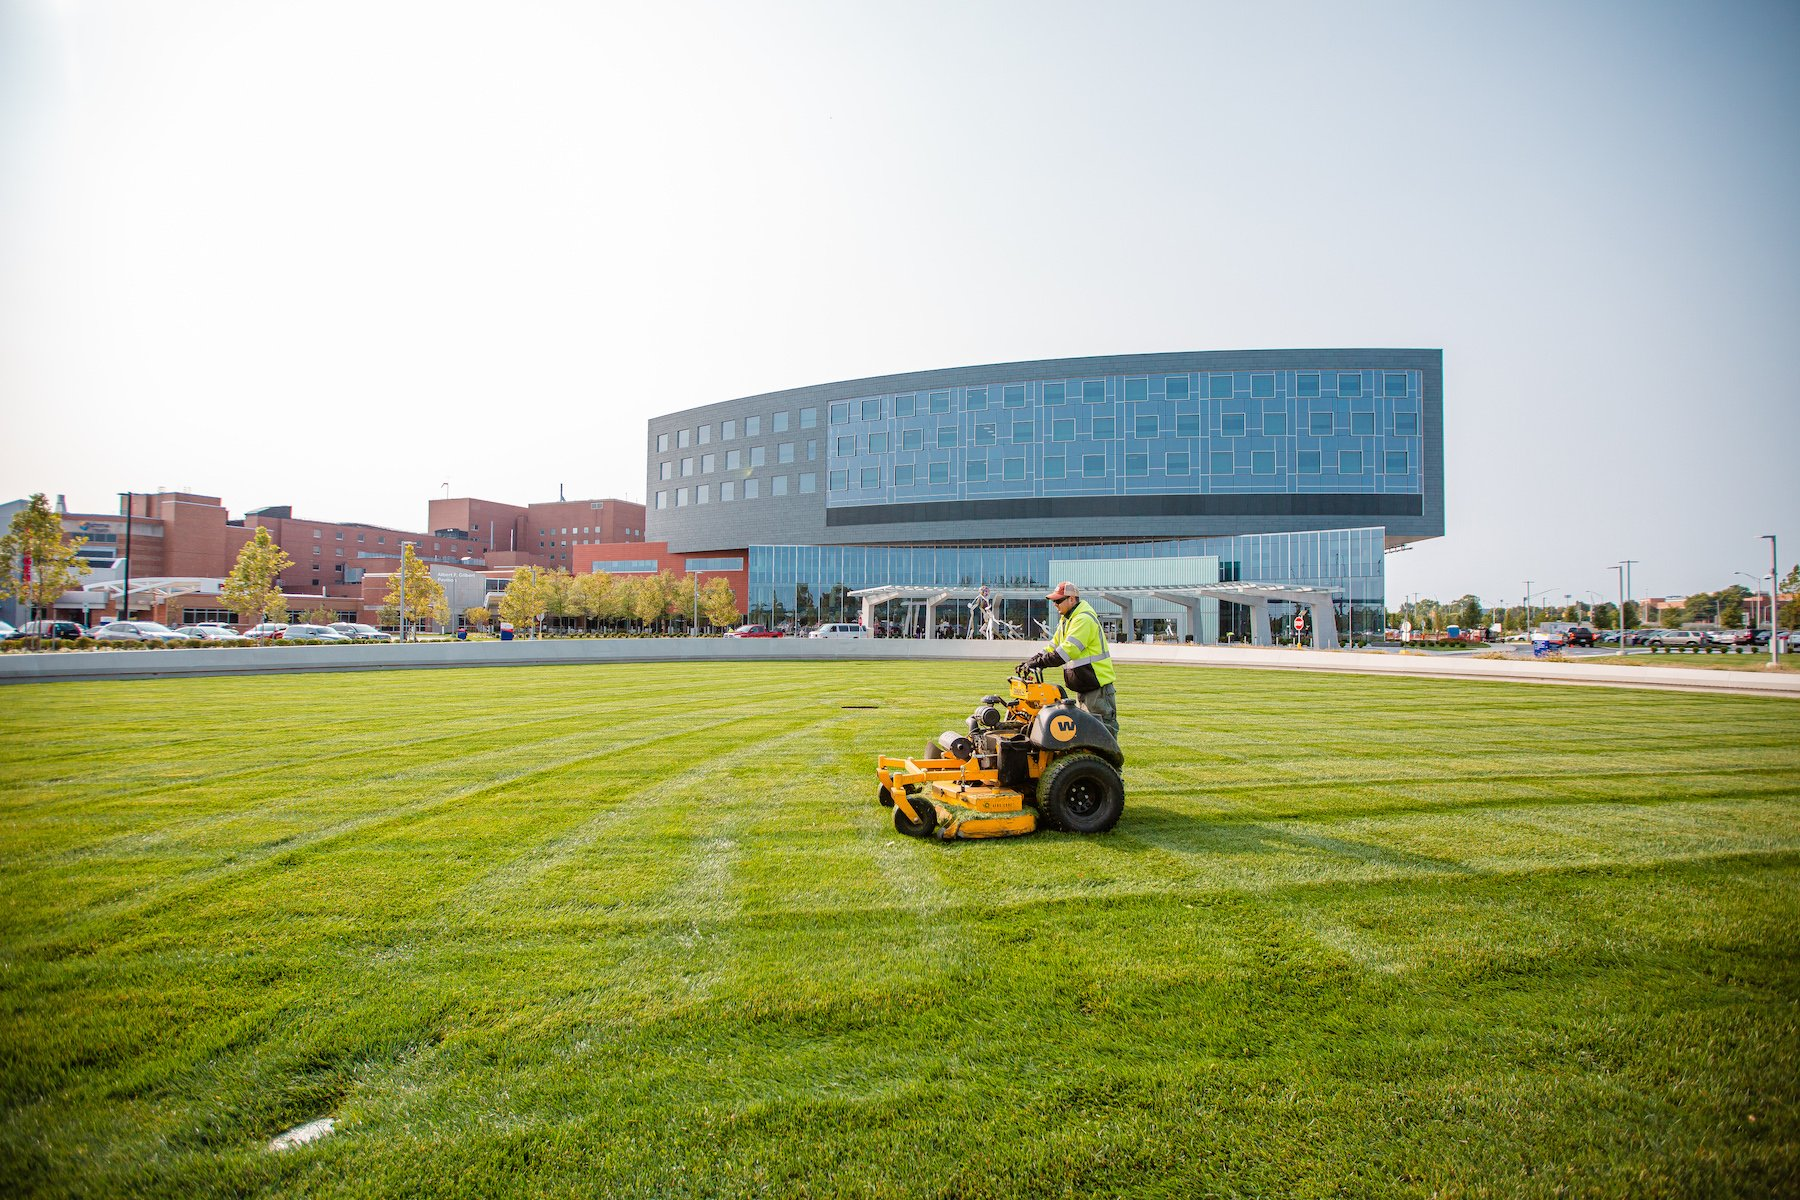 hospital-healthcare-mowing-maintenance-lawn